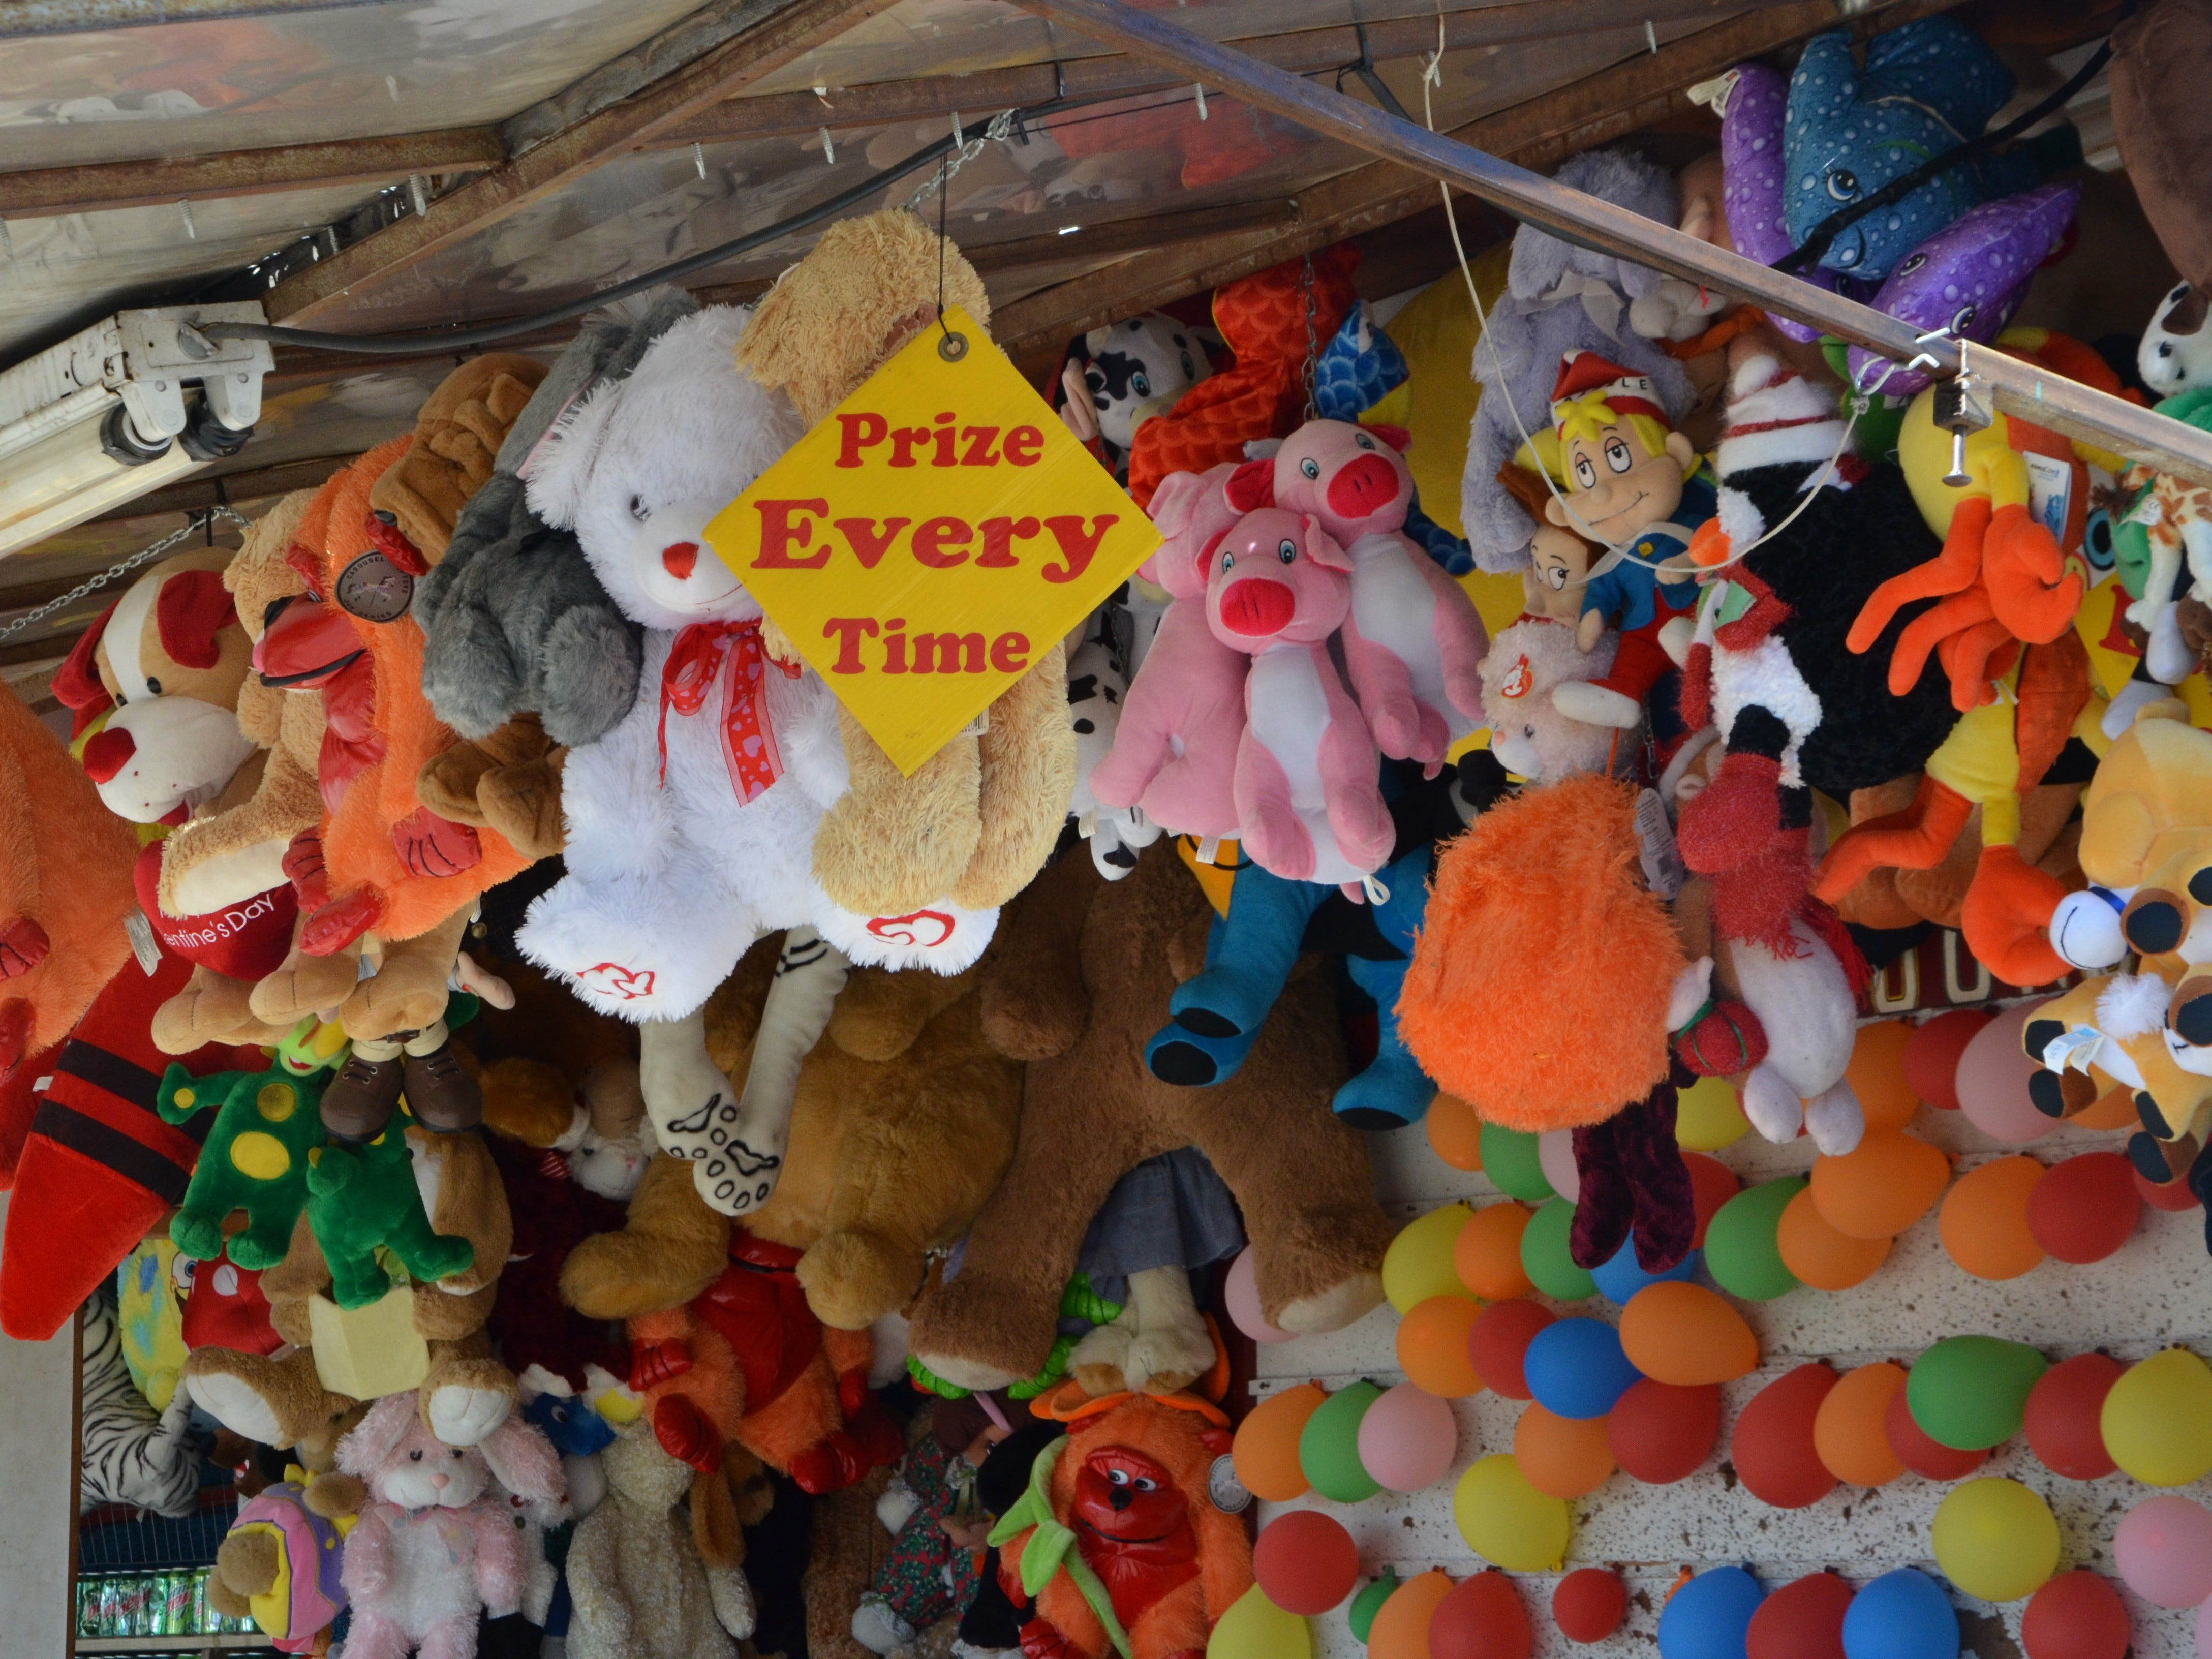 Some of the game prizes at Family Fun Tyme Amusements.